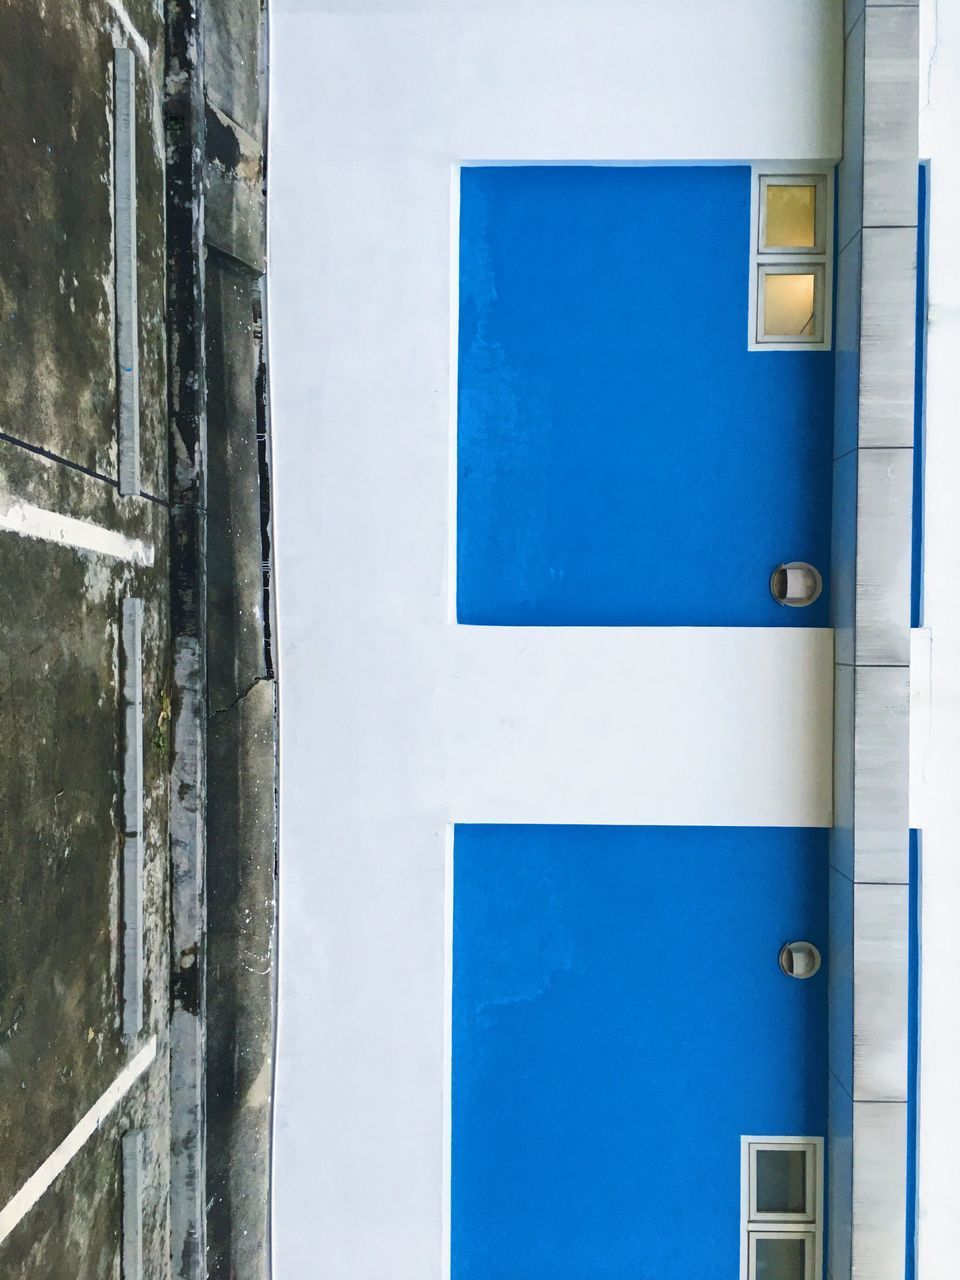 blue, architecture, built structure, building exterior, no people, wall - building feature, day, white color, building, window, outdoors, door, entrance, metal, sky, protection, glass - material, safety, security, close-up